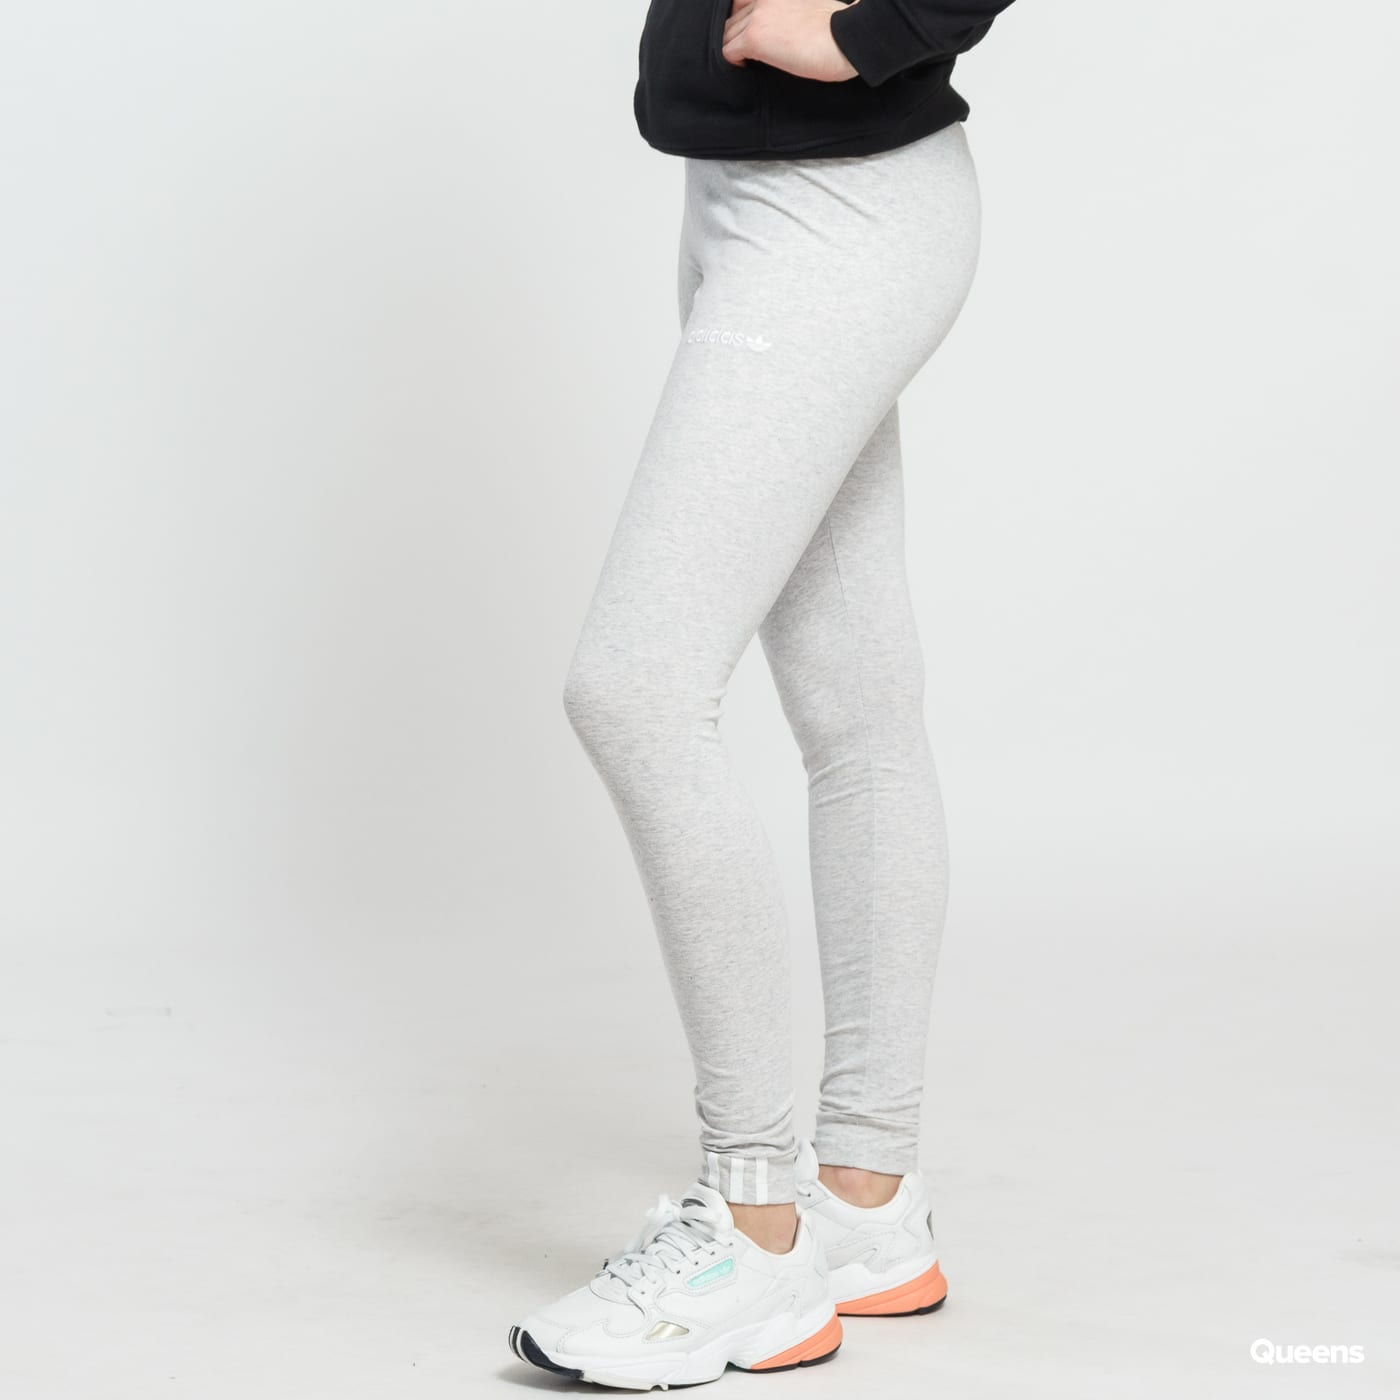 af363e0cbdf Legíny adidas Originals Coeeze Tight (DU7197) – Queens 💚